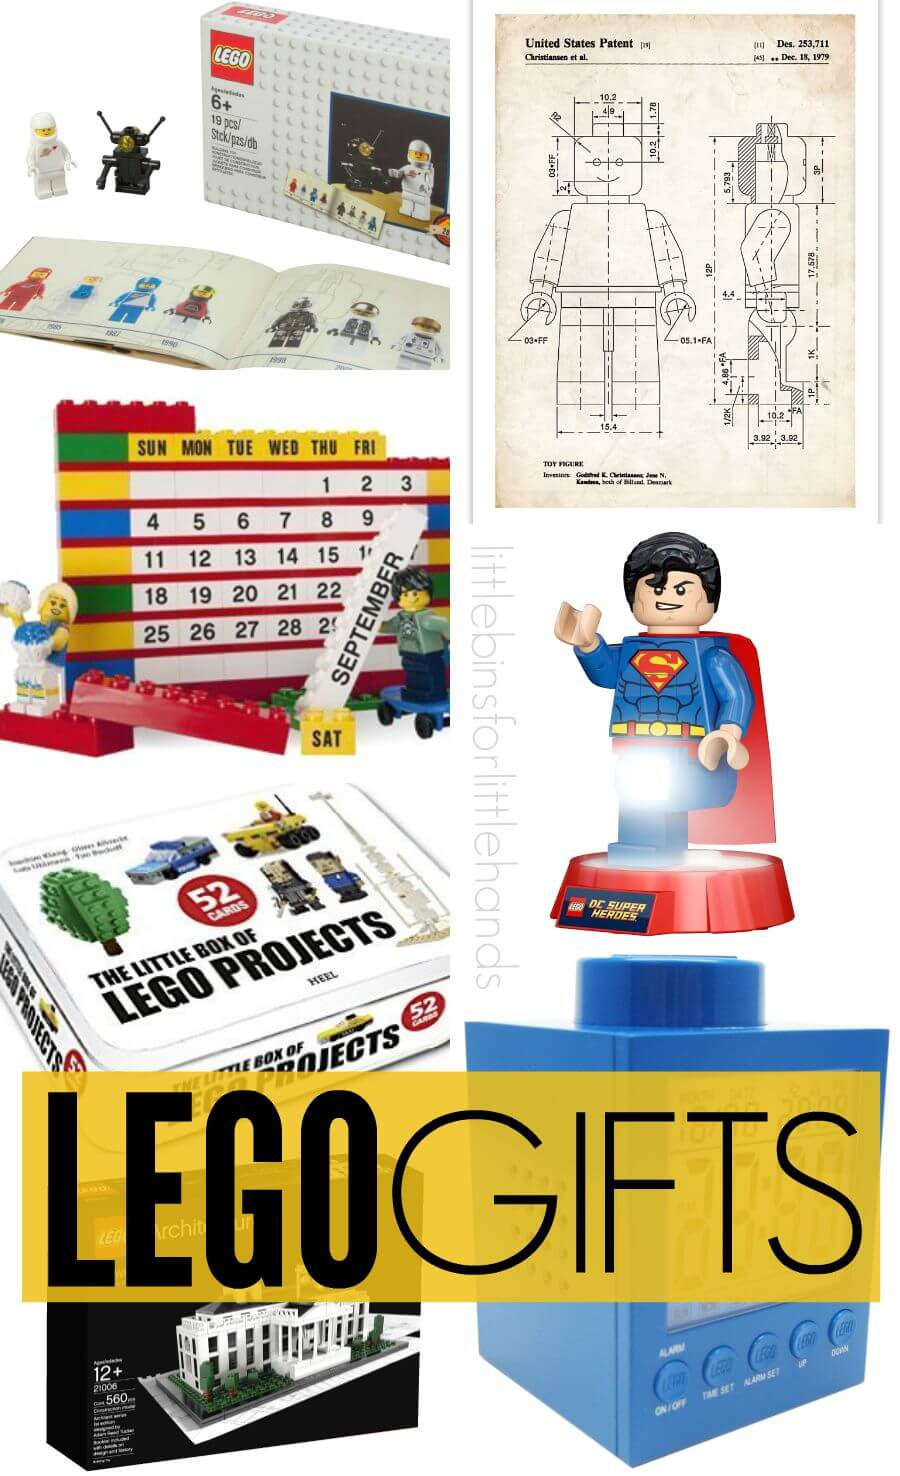 Fun LEGO Gifts for All Ages Kids Teens Adults Unique LEGO presents guide